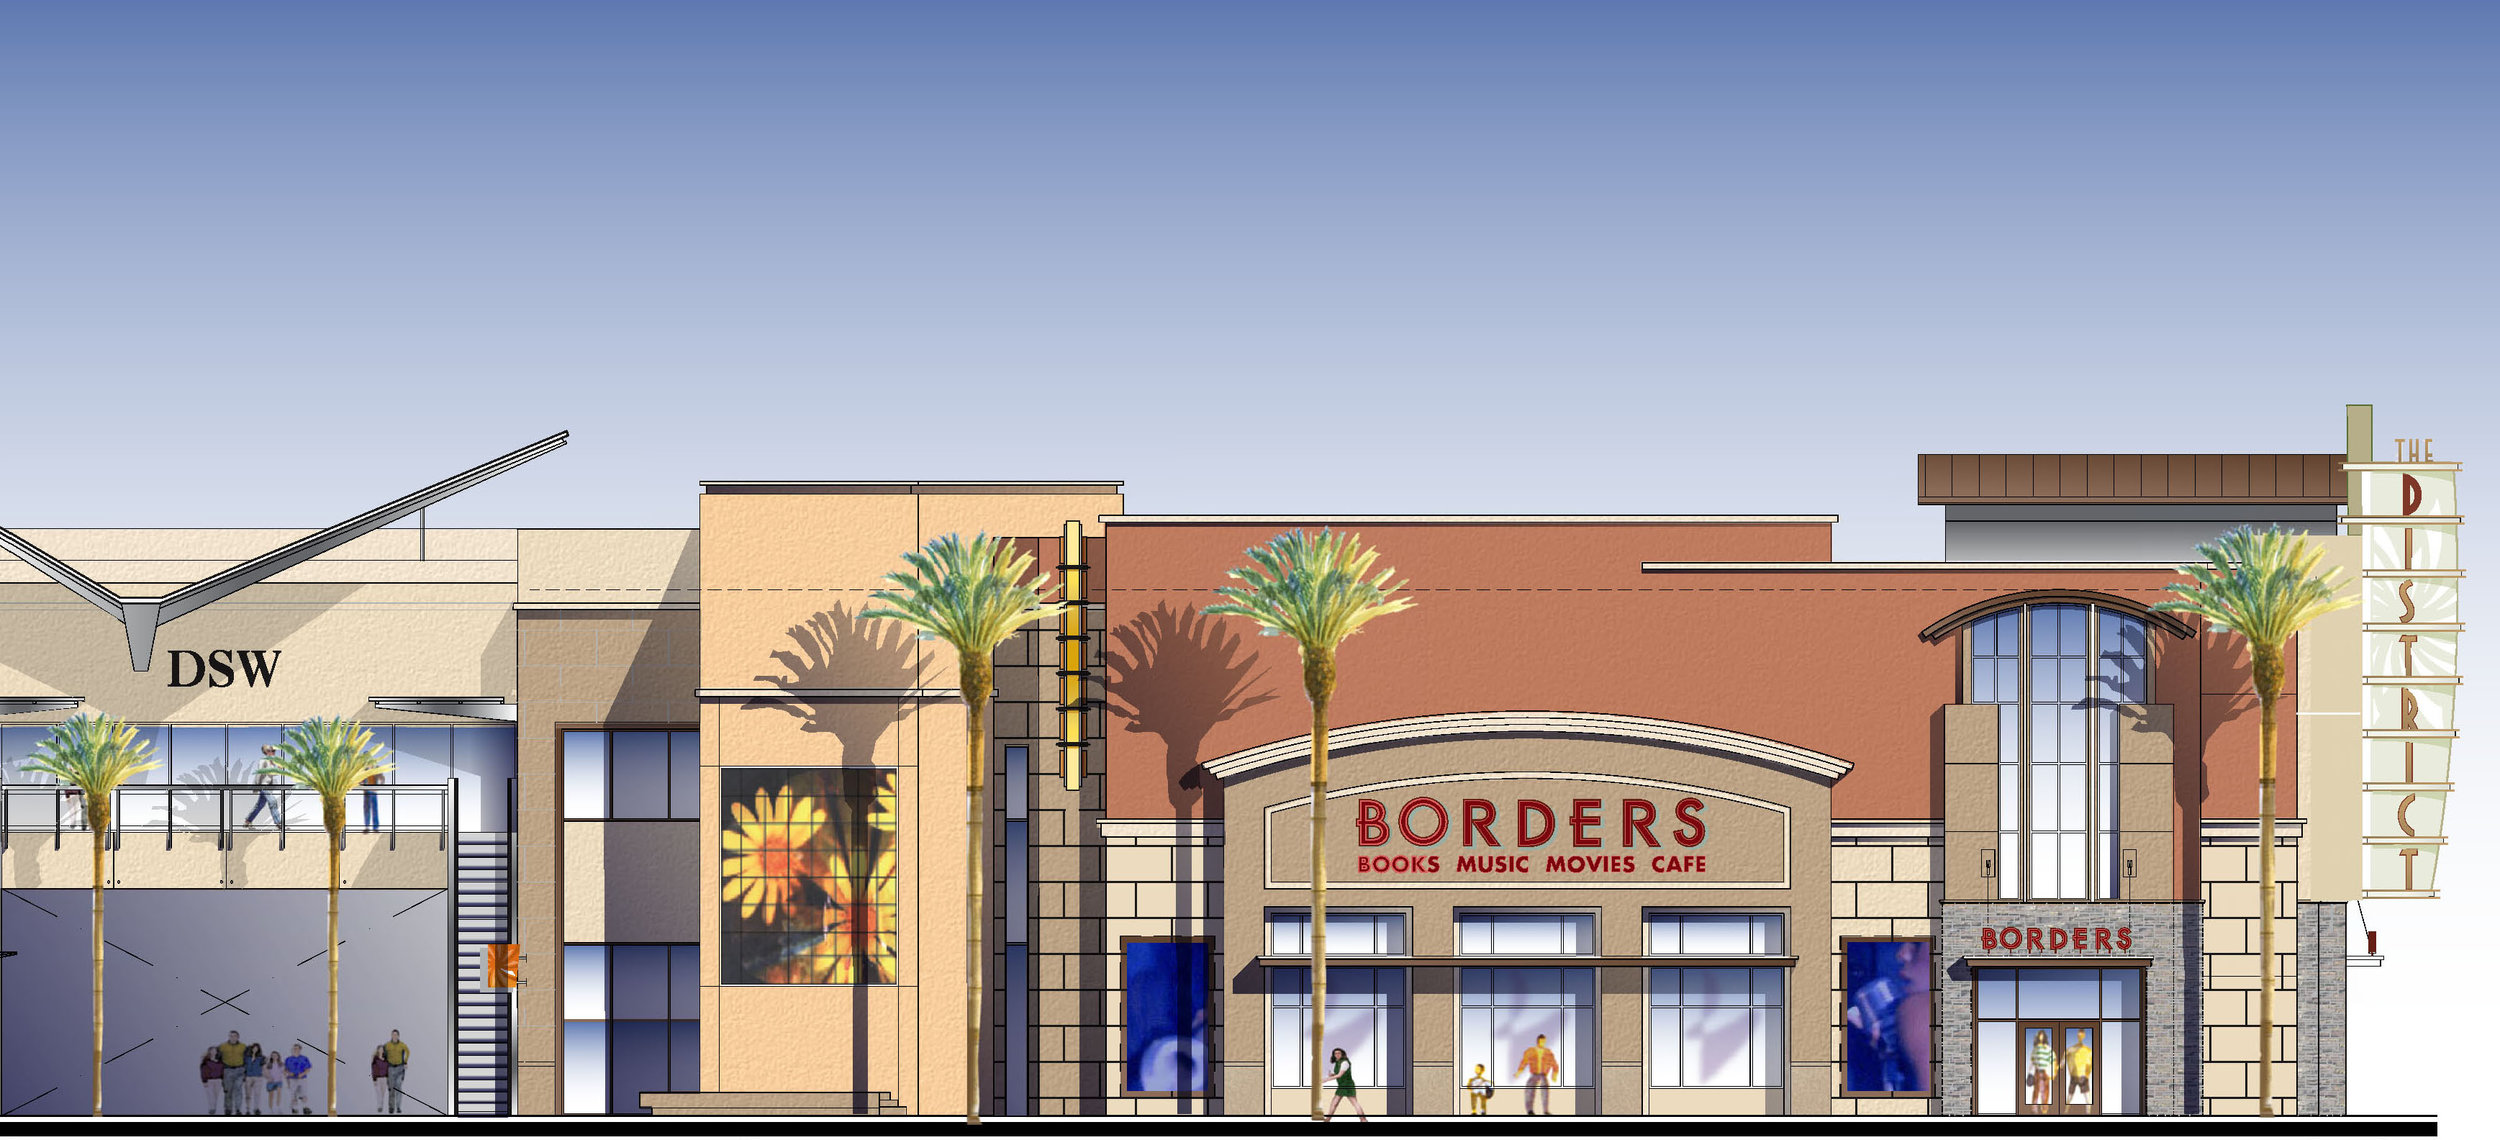 Borders Exterior Elevation.jpg